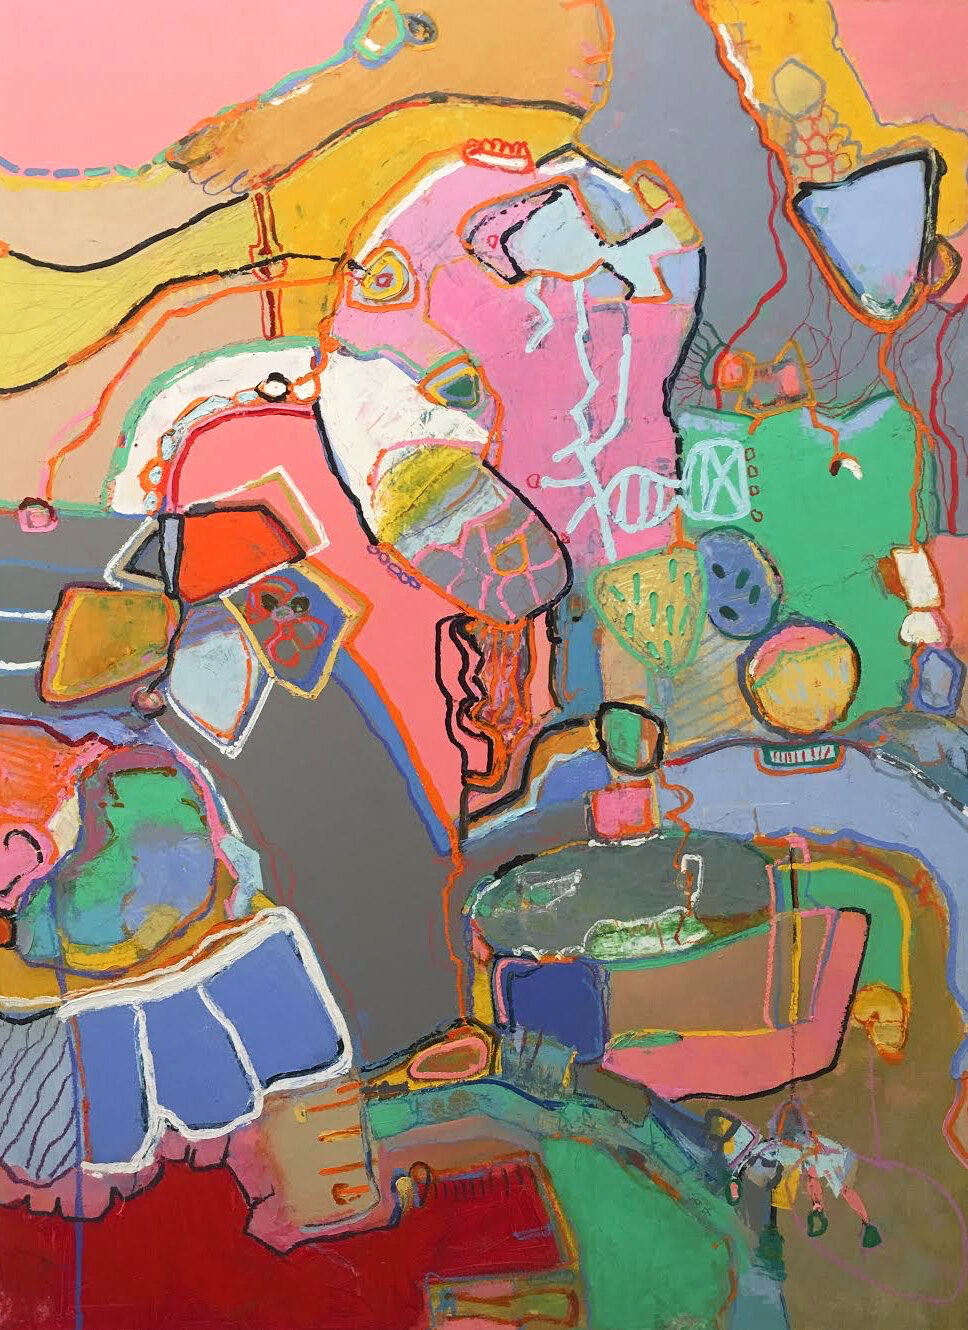 Abstract painting dominated with multi colors and lines, blue, green pink, blush, yellow, brown.